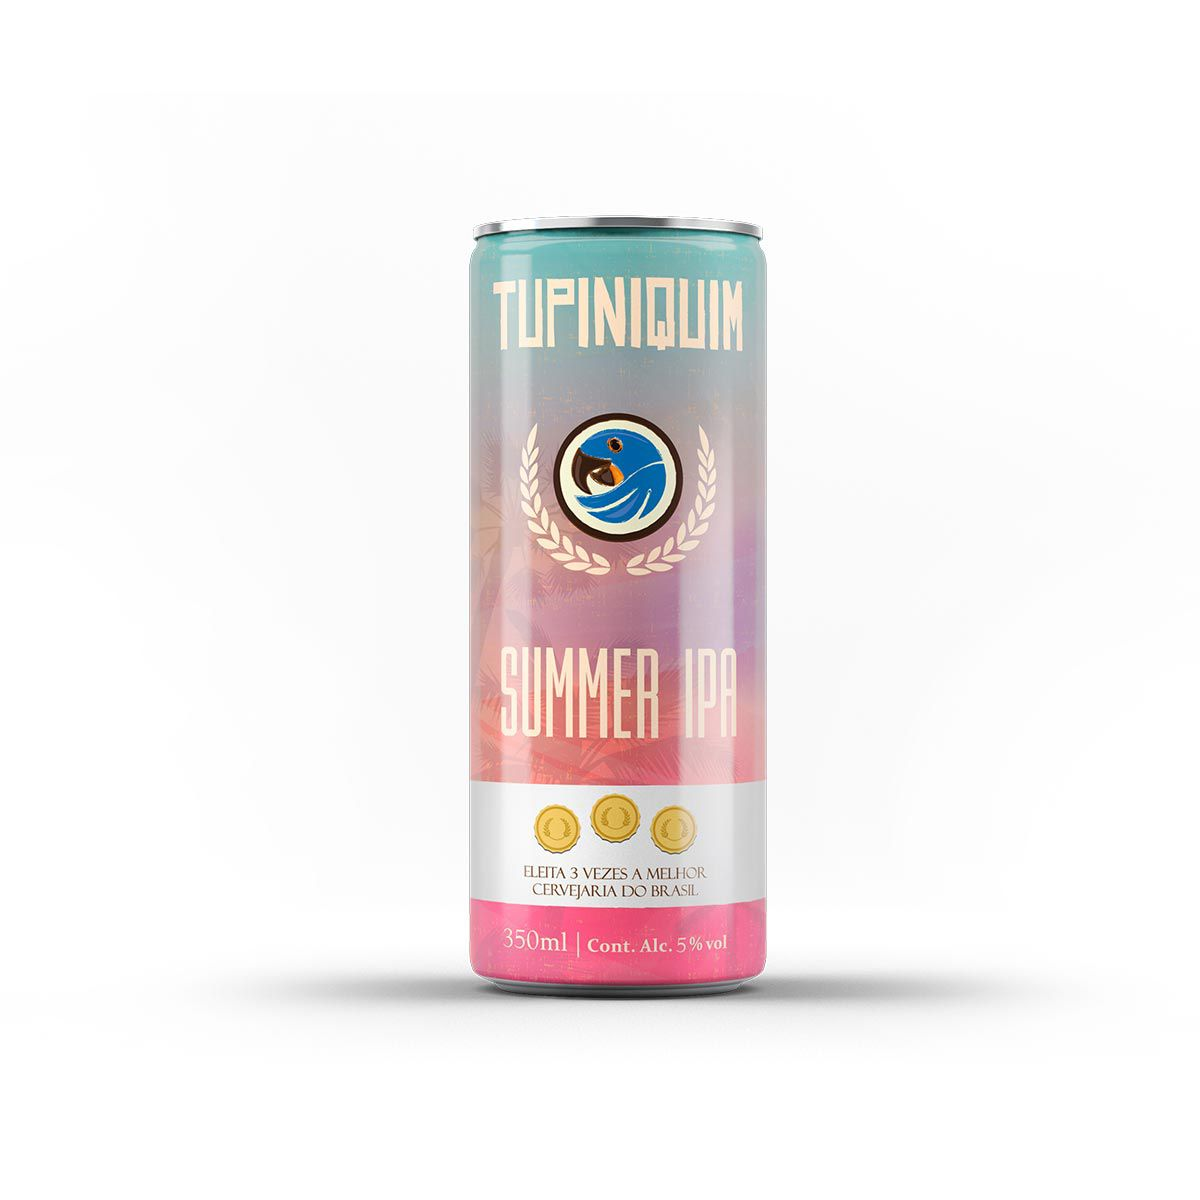 Tupiniquim Summer IPA 350ml lata